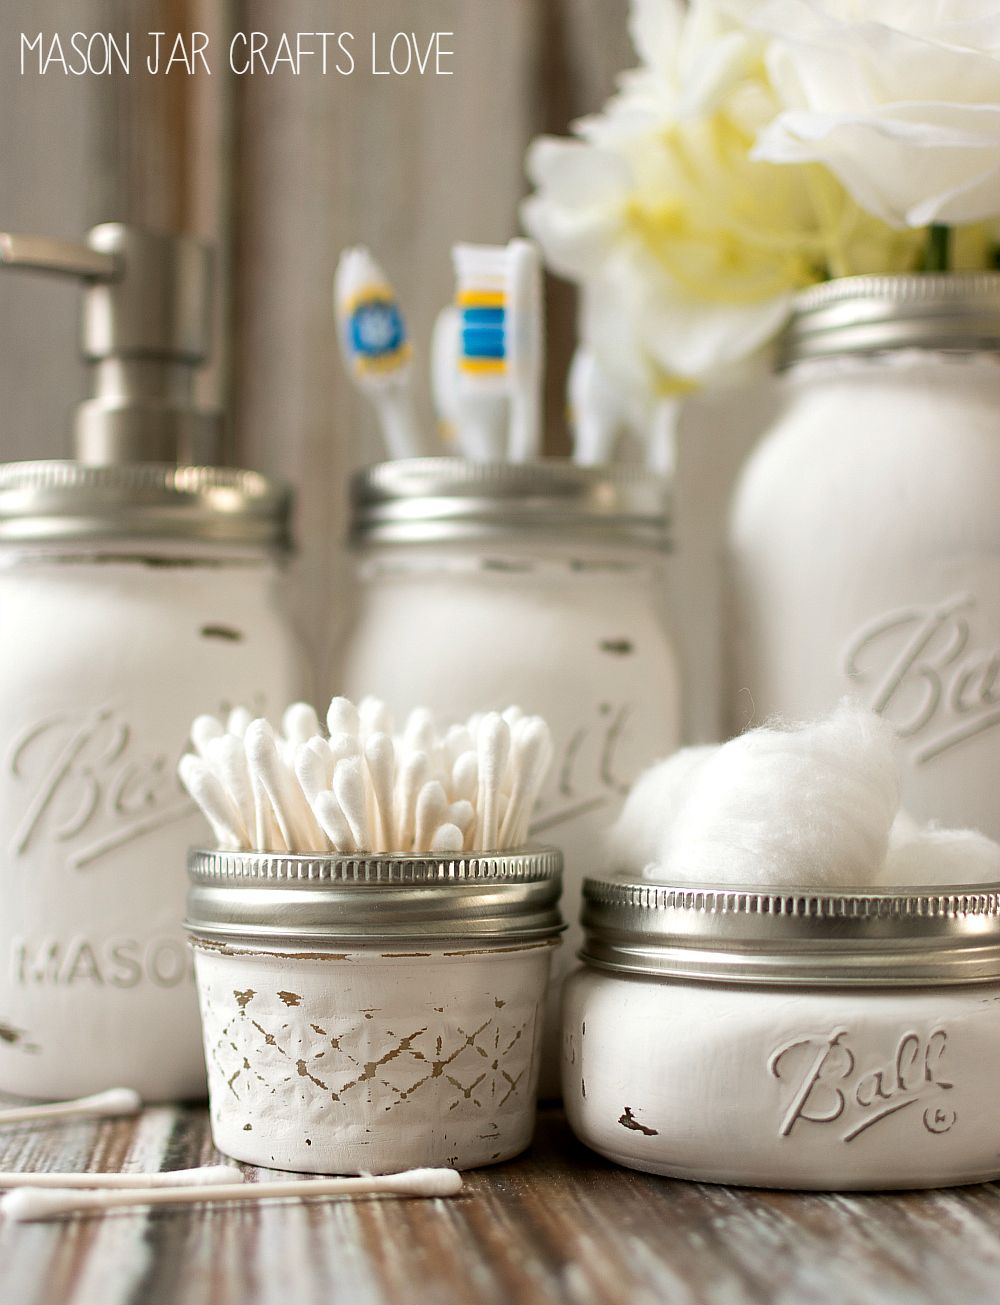 9 Great Mason Jar Ideas - Easy Crafts and Decor for Mason Jars